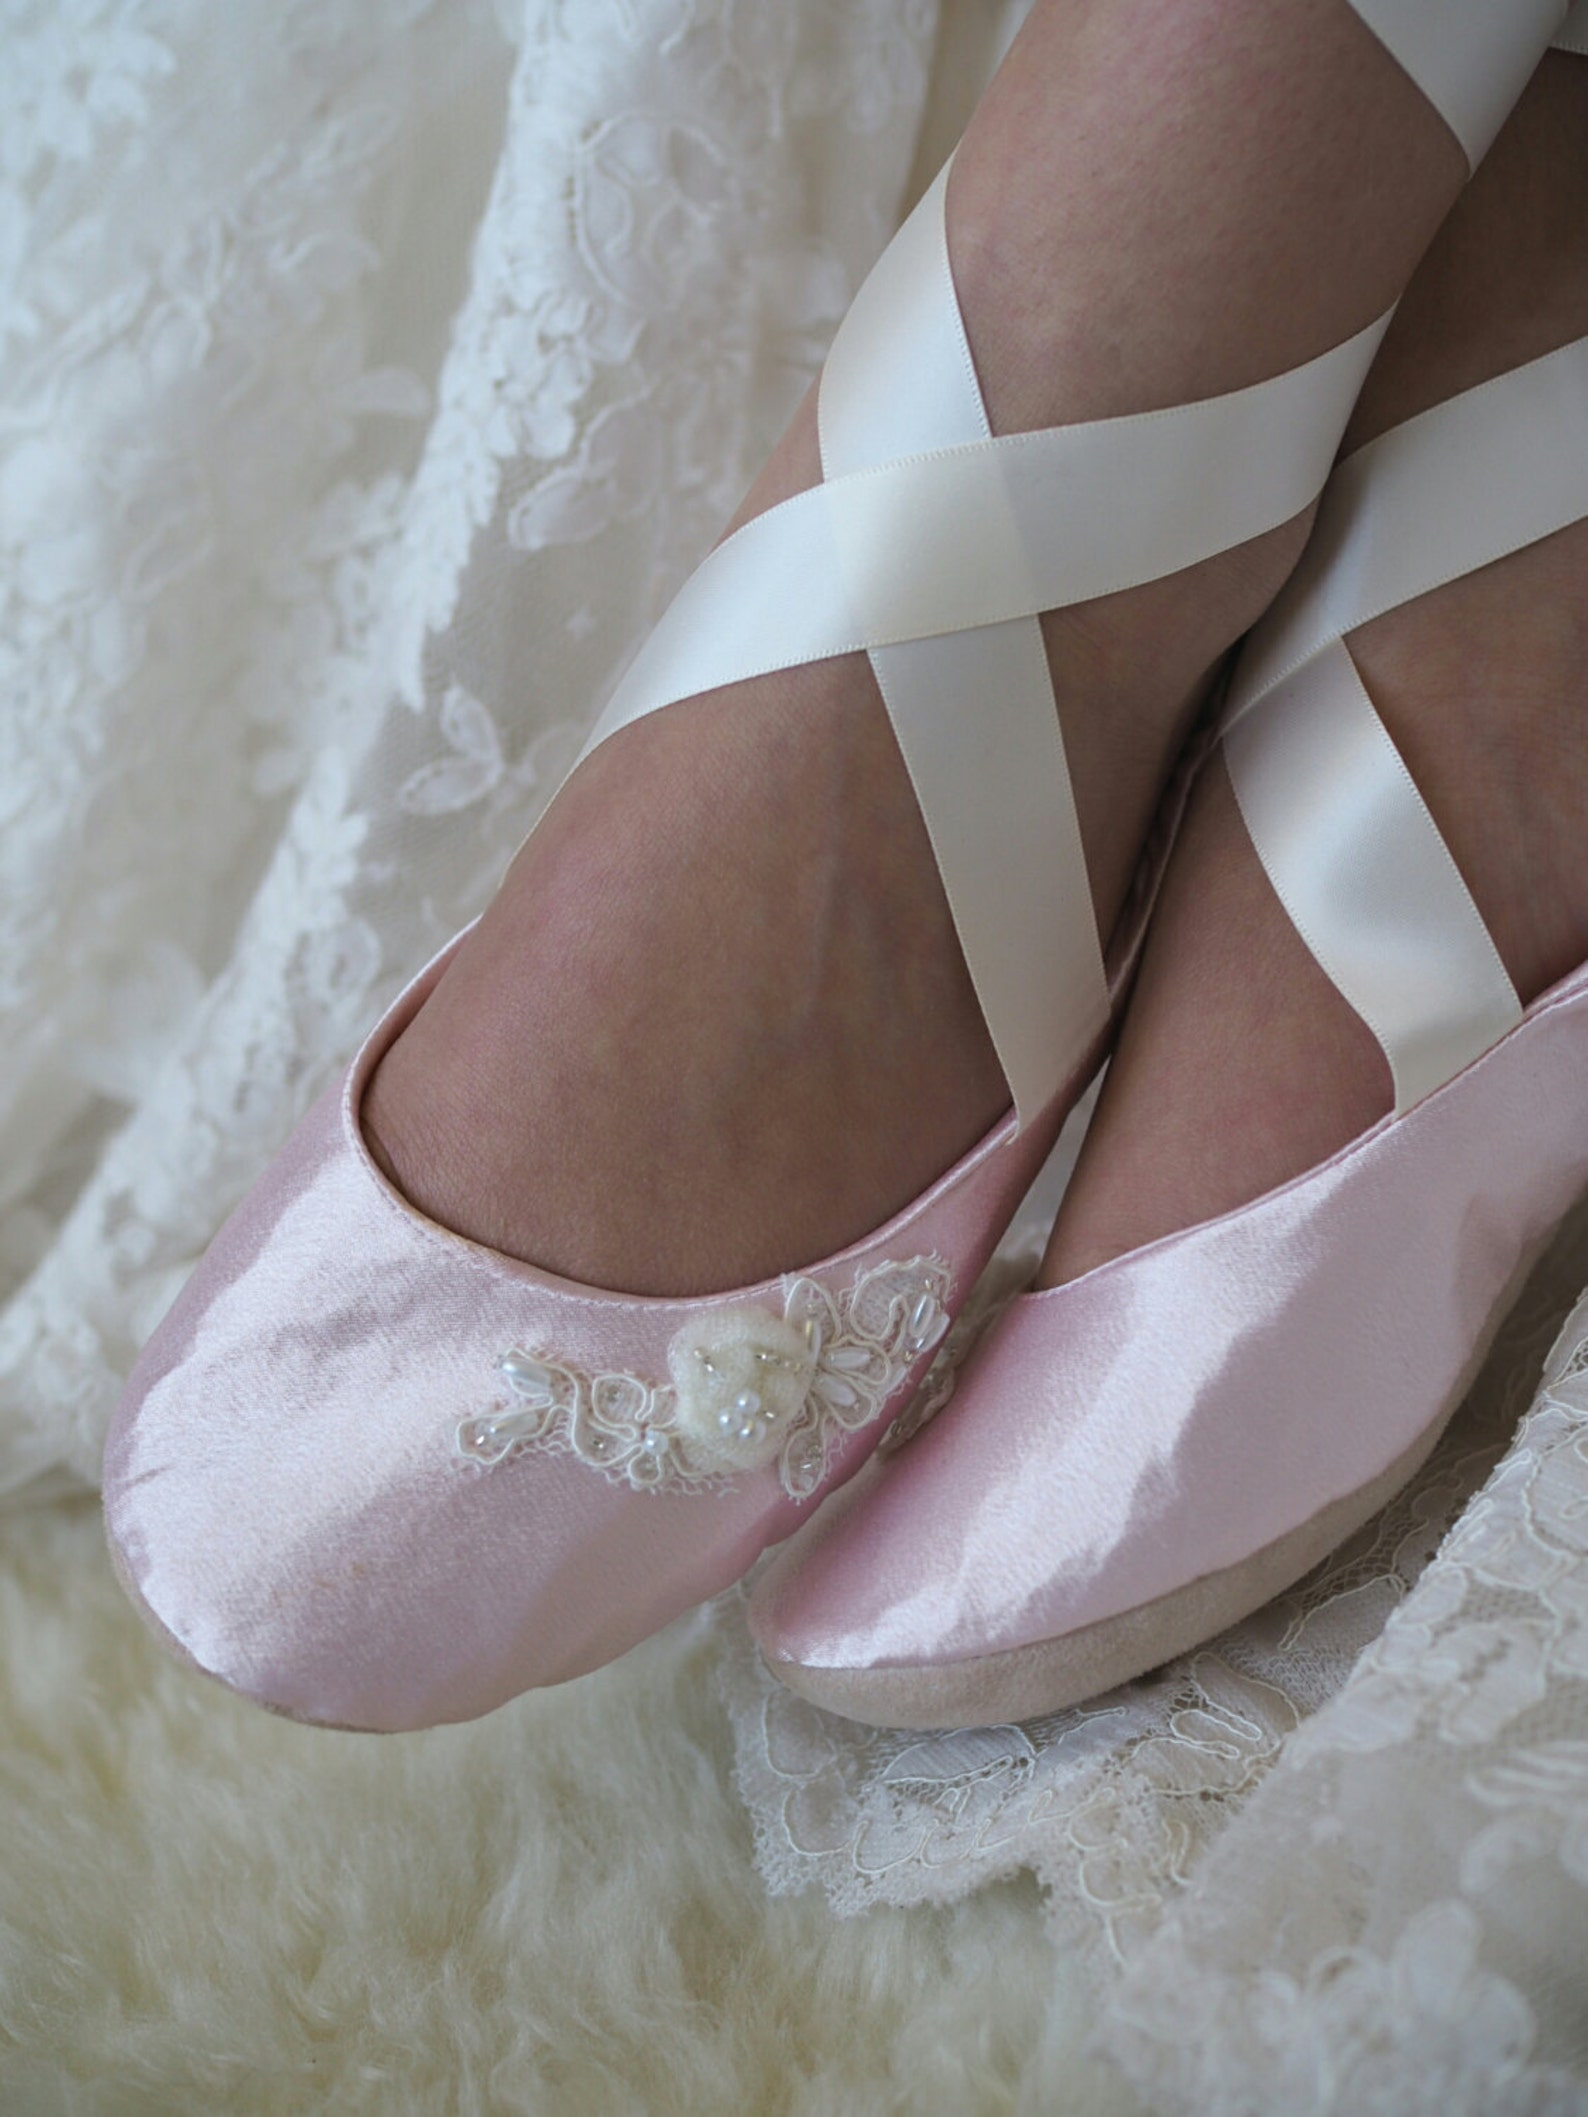 blush pink ballerina bridal slipper, pink ballet wedding slipper, ballerina style flat wedding shoe